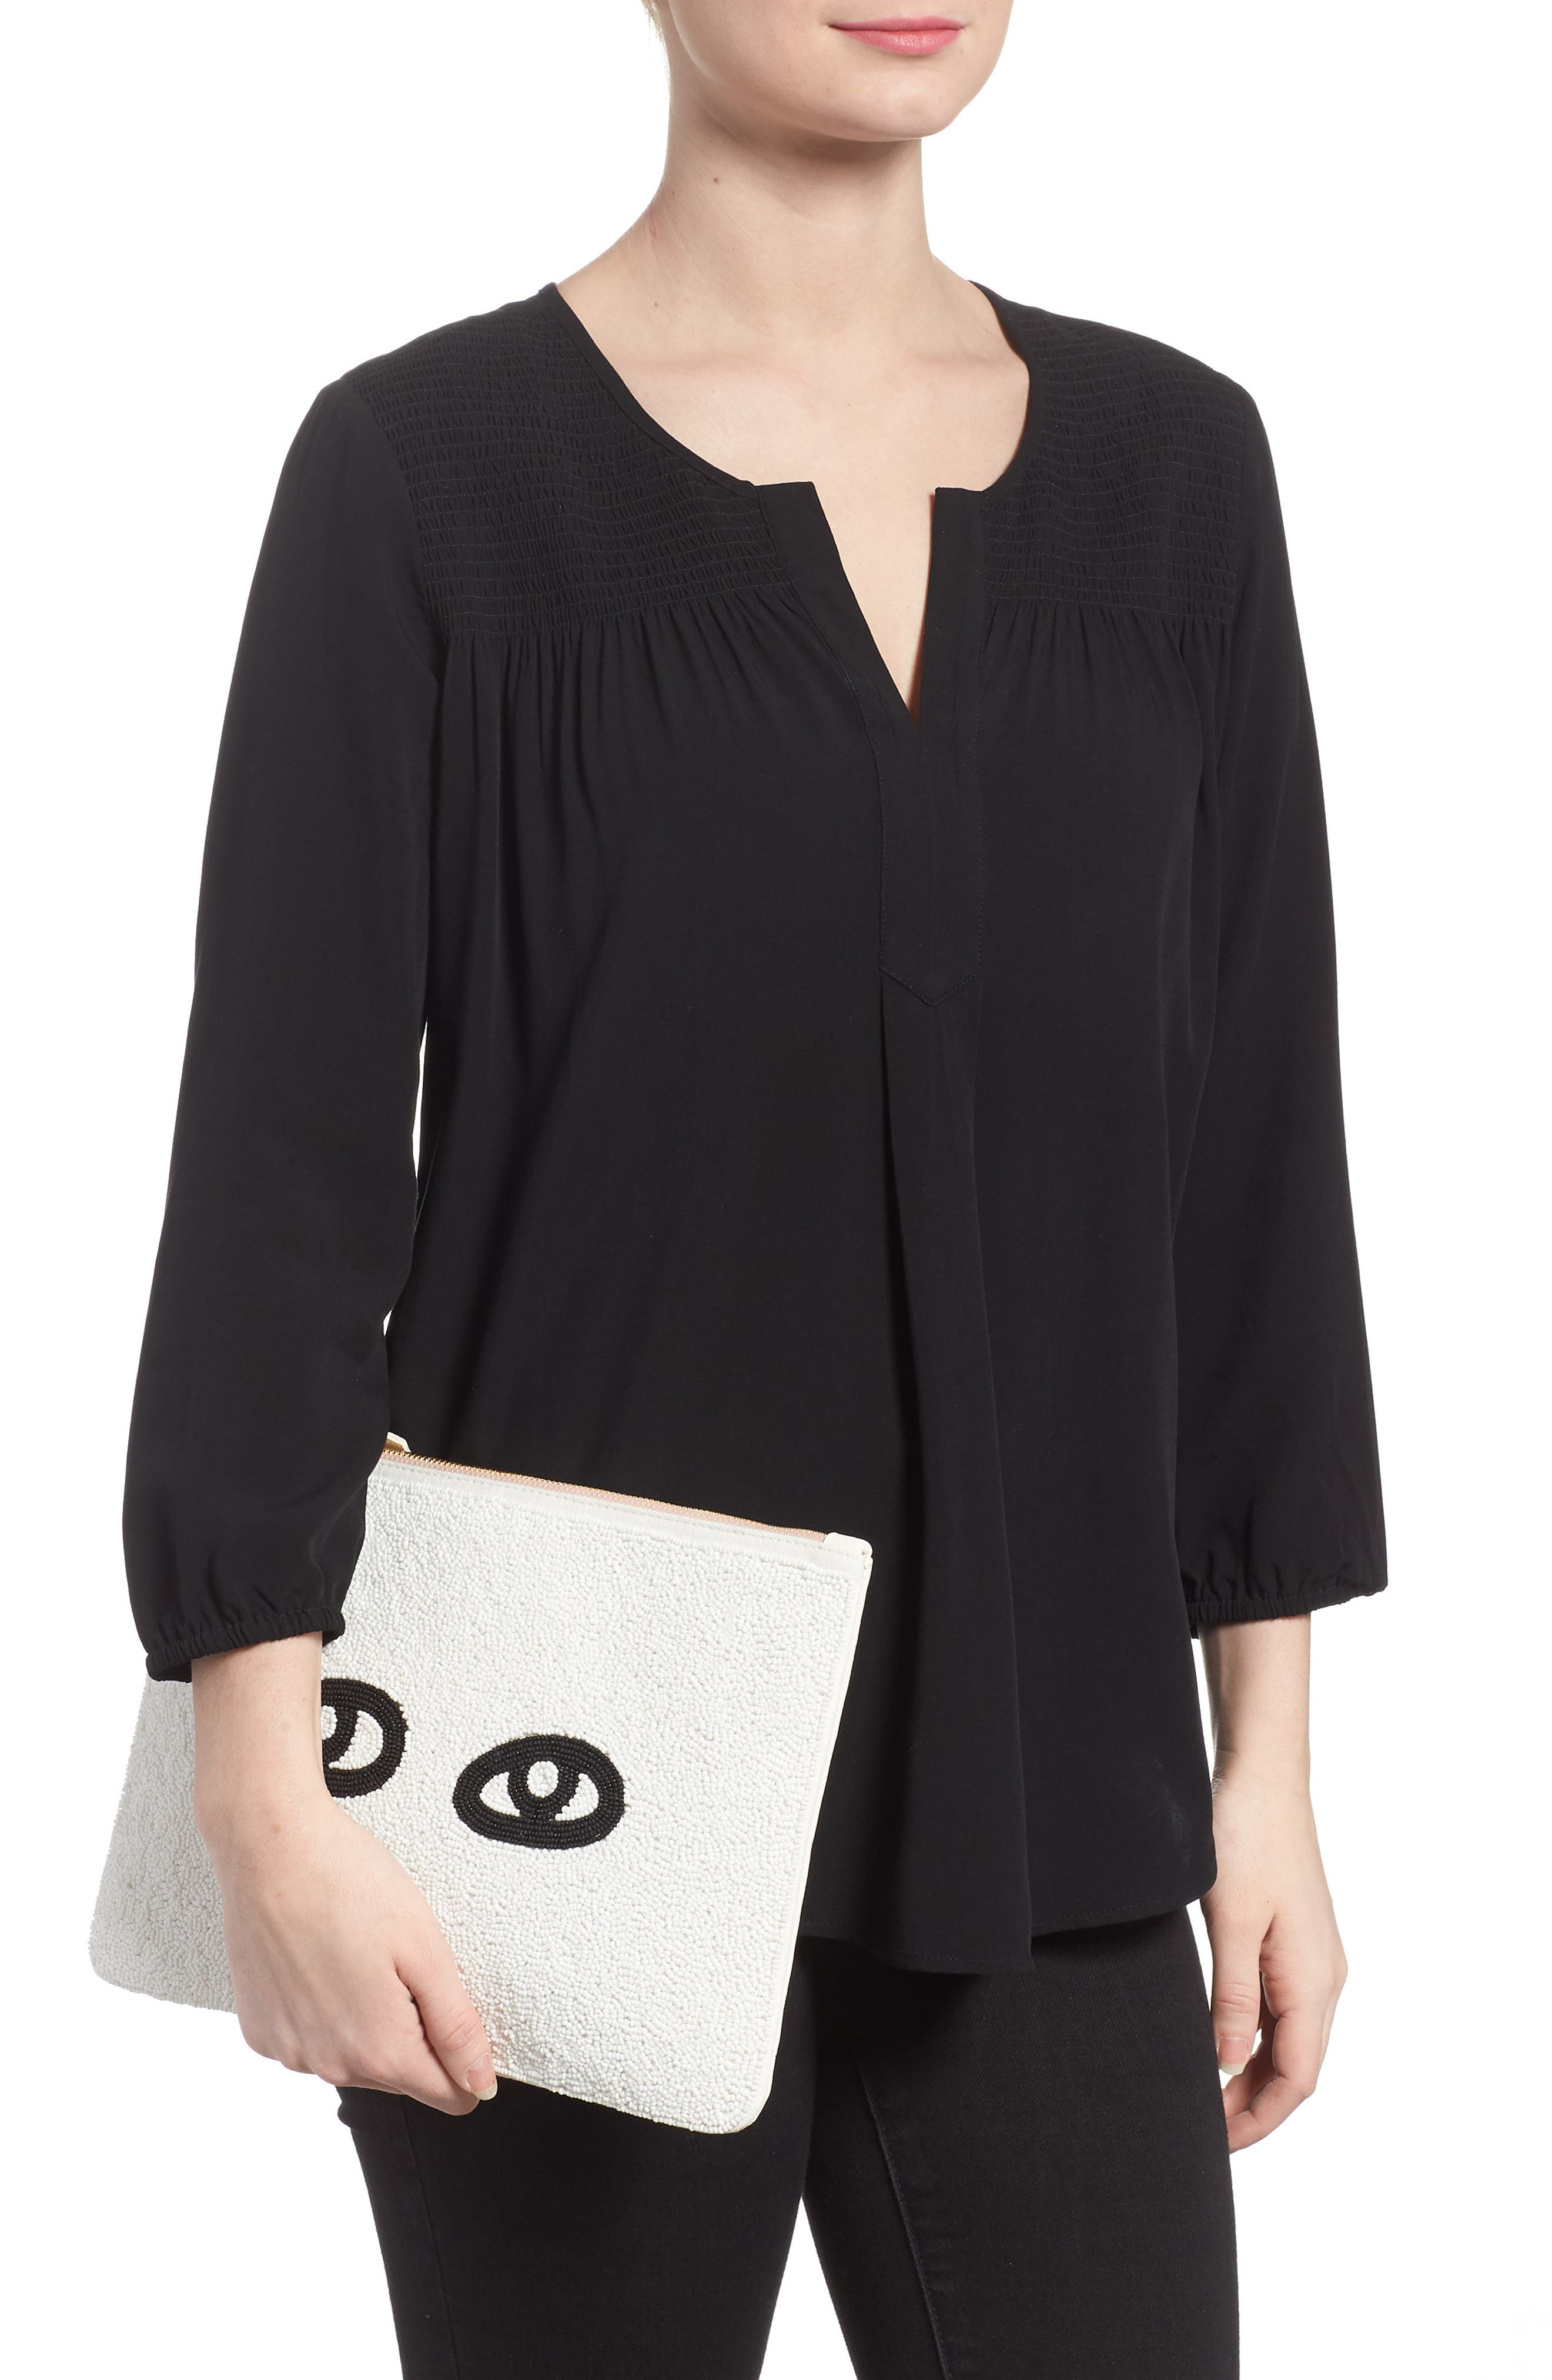 Eyes Printed Nappa Leather Clutch,                             Alternate thumbnail 2, color,                             Beaded White With Black Eyes